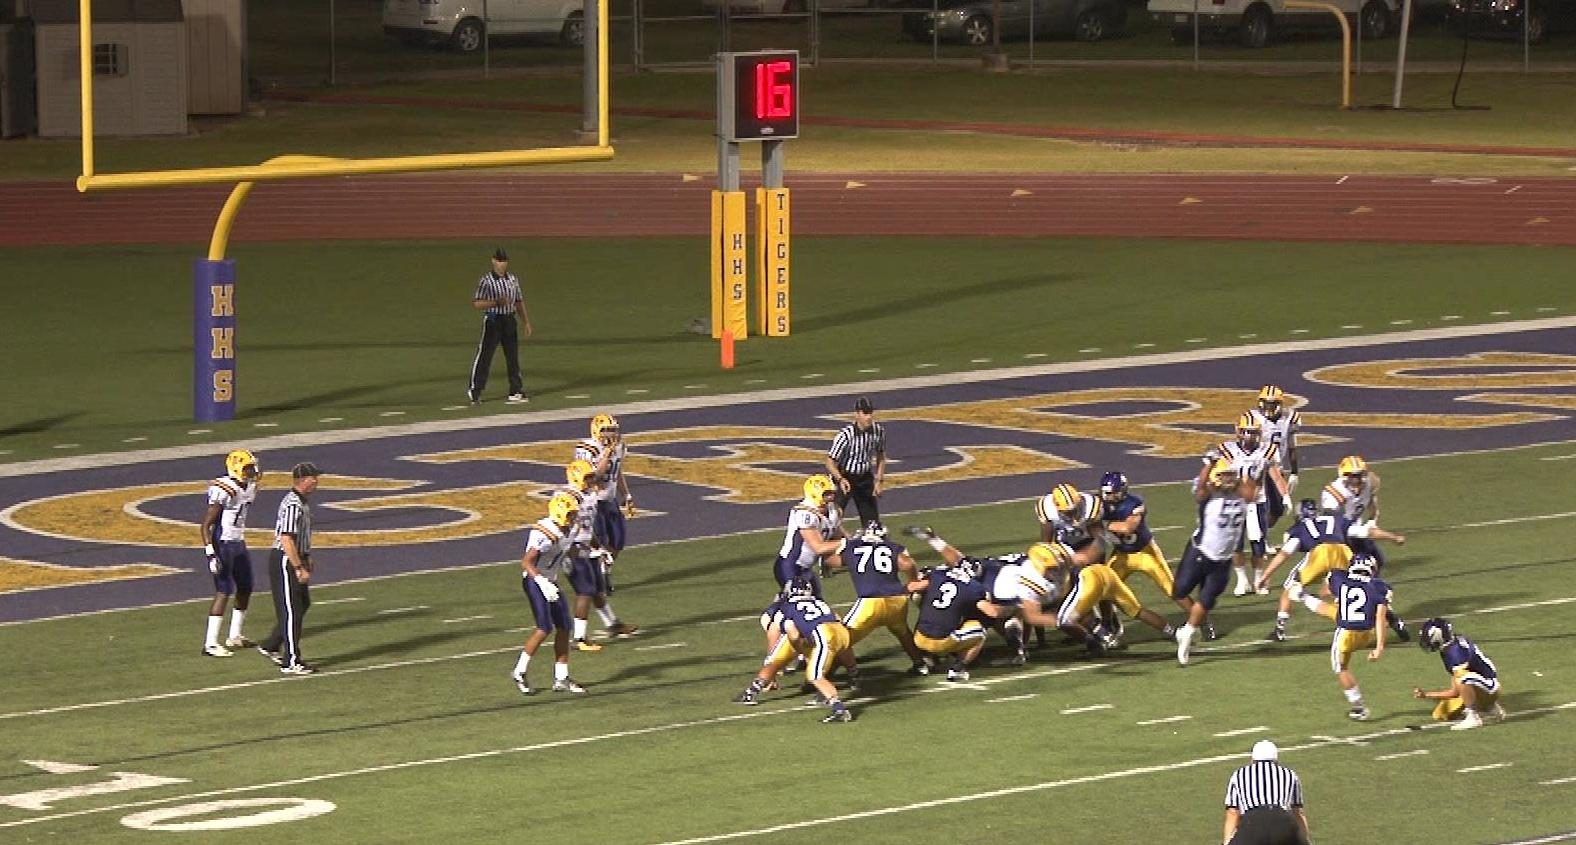 Thibodaux breaks through the line to block a field-goal attempt by Hahnville kicker Matt Boyer just before halftime. Andy Brown returned the block for a touchdown in Thibodaux's 19-16 win. (Photo/Hahnville High School)